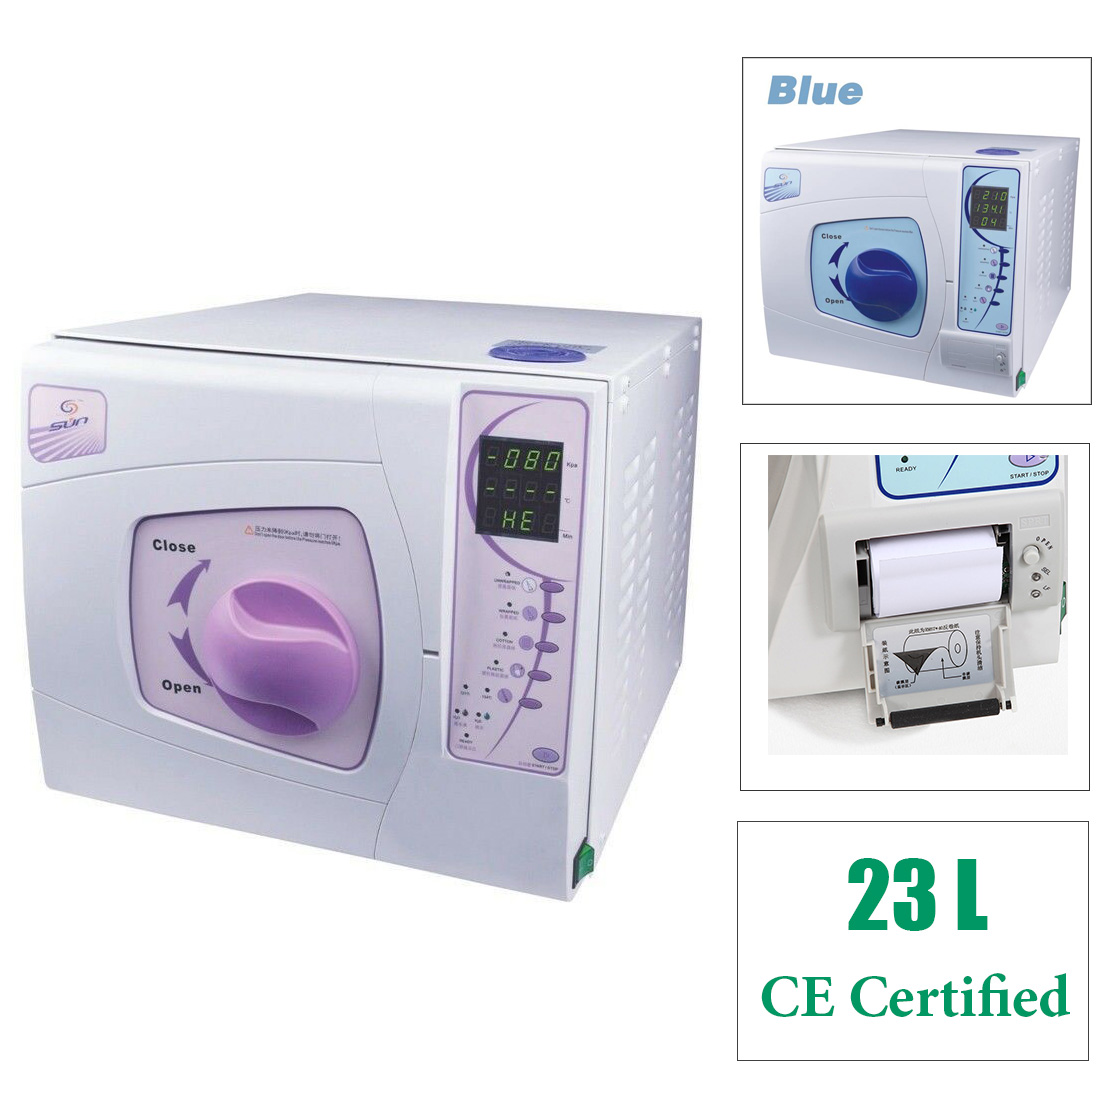 Sun 23L Class B Autoclave Steriliser Vacuum Steam Machine with Printer Medical G...